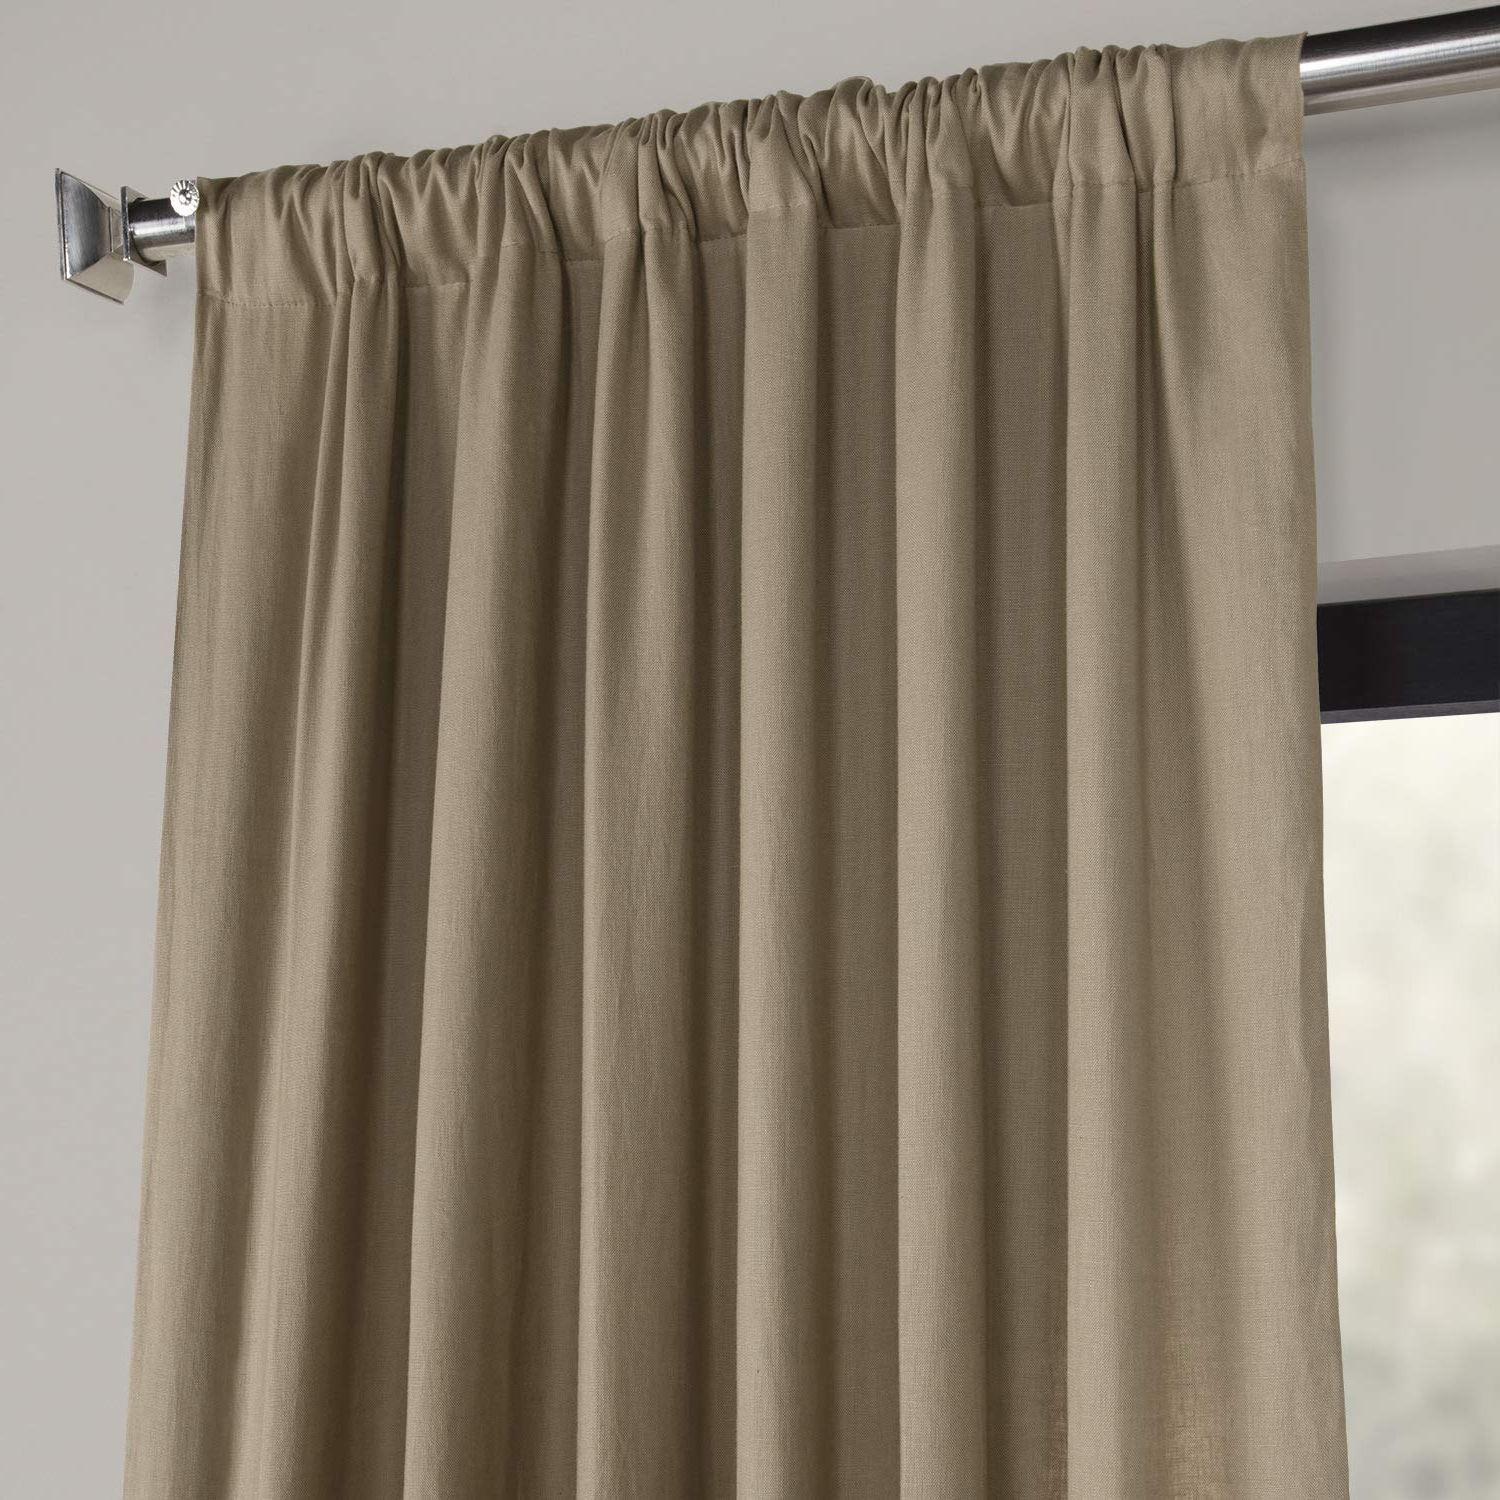 2020 Ln Xs1703 96 French Linen Curtain, Flax Beige, 50 X 96 For French Linen Lined Curtain Panels (View 1 of 20)